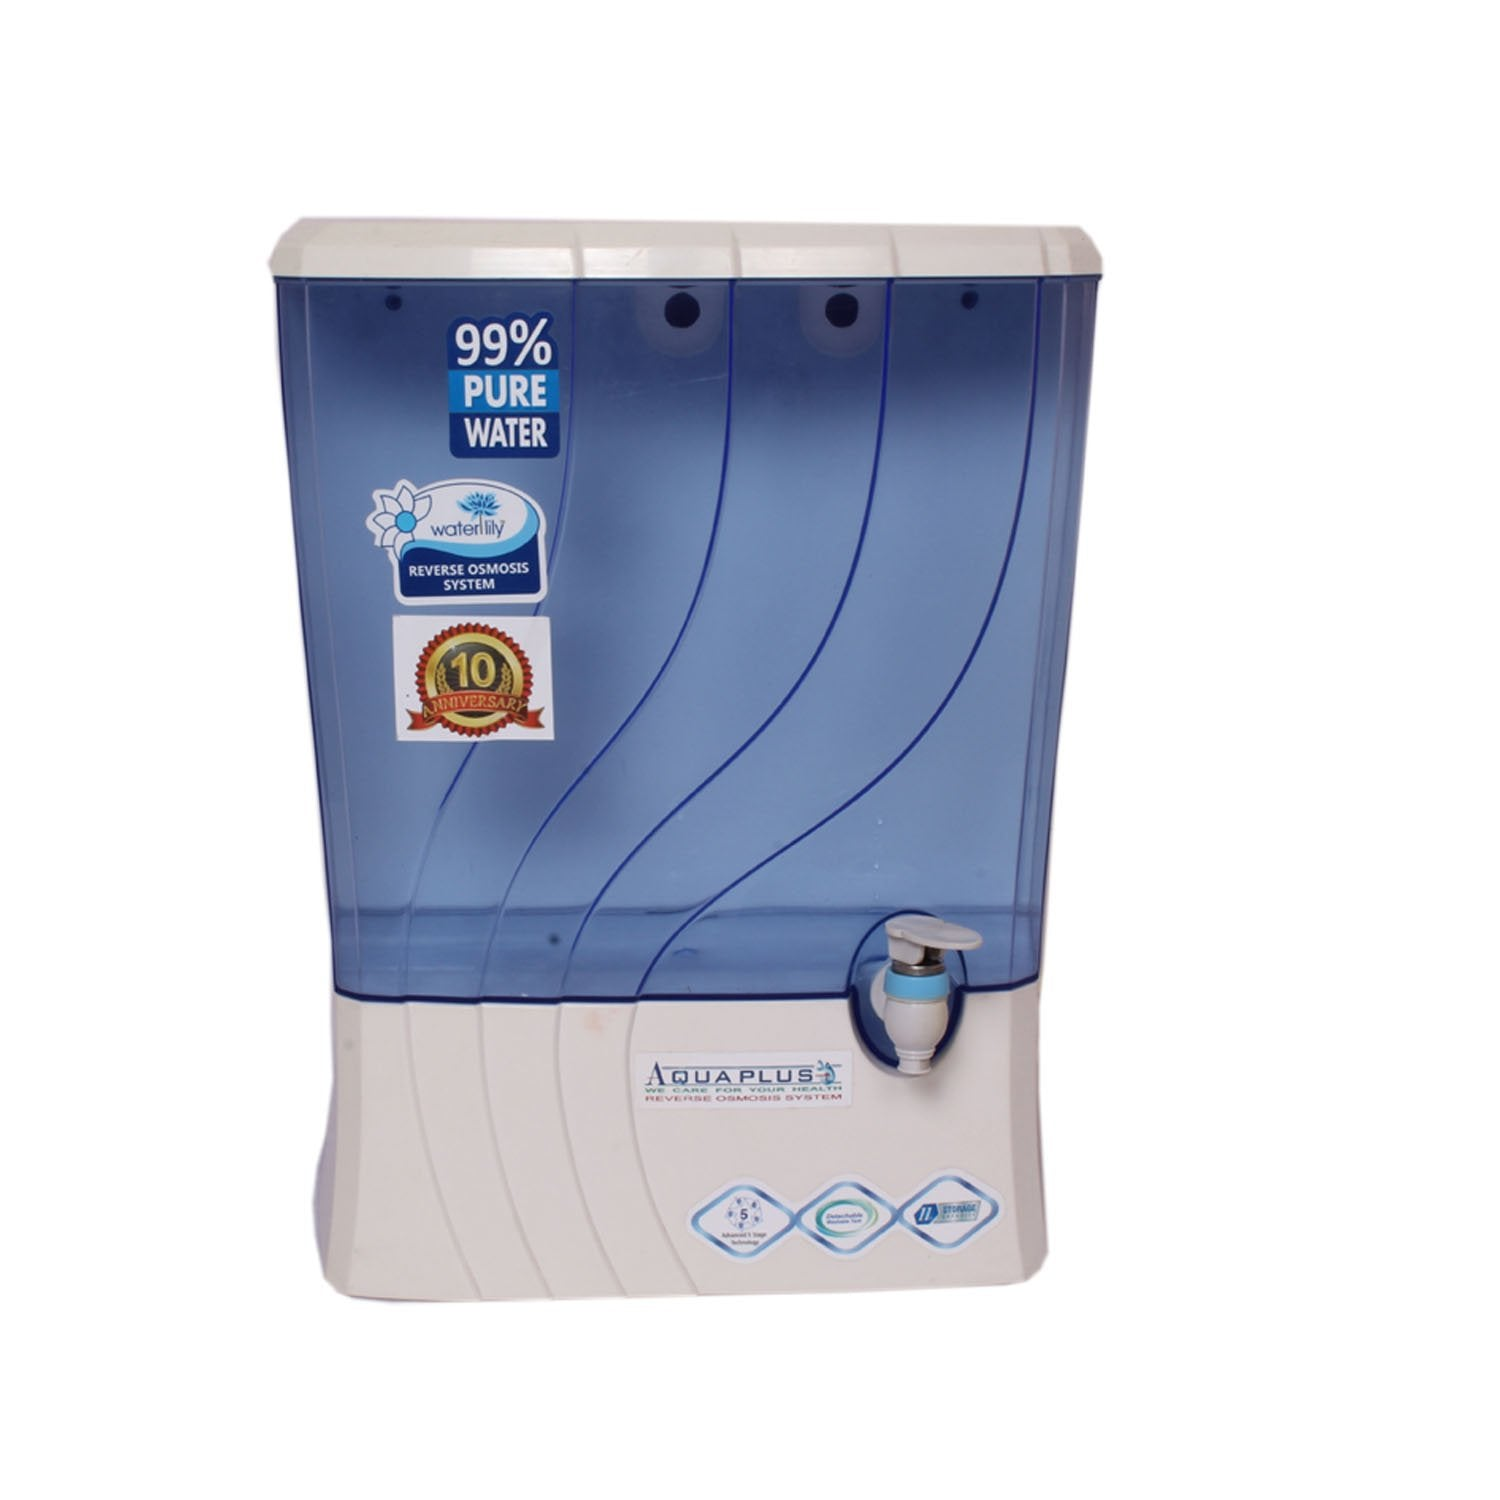 Aquaplus Waterlily RO Water Purifier With Active Copper